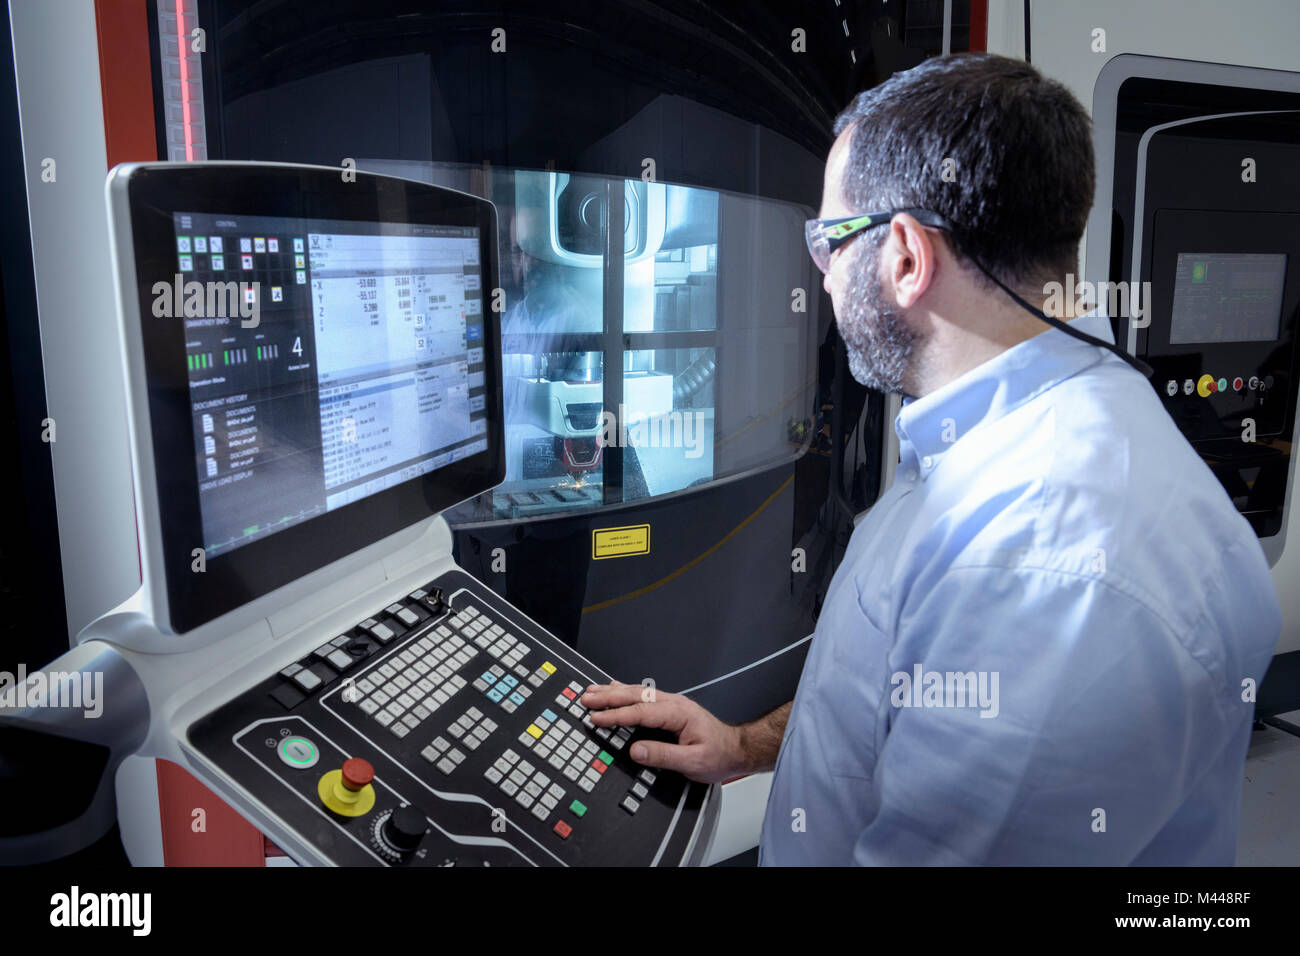 Operator with stainless steel 3D printer in robotics research facility - Stock Image